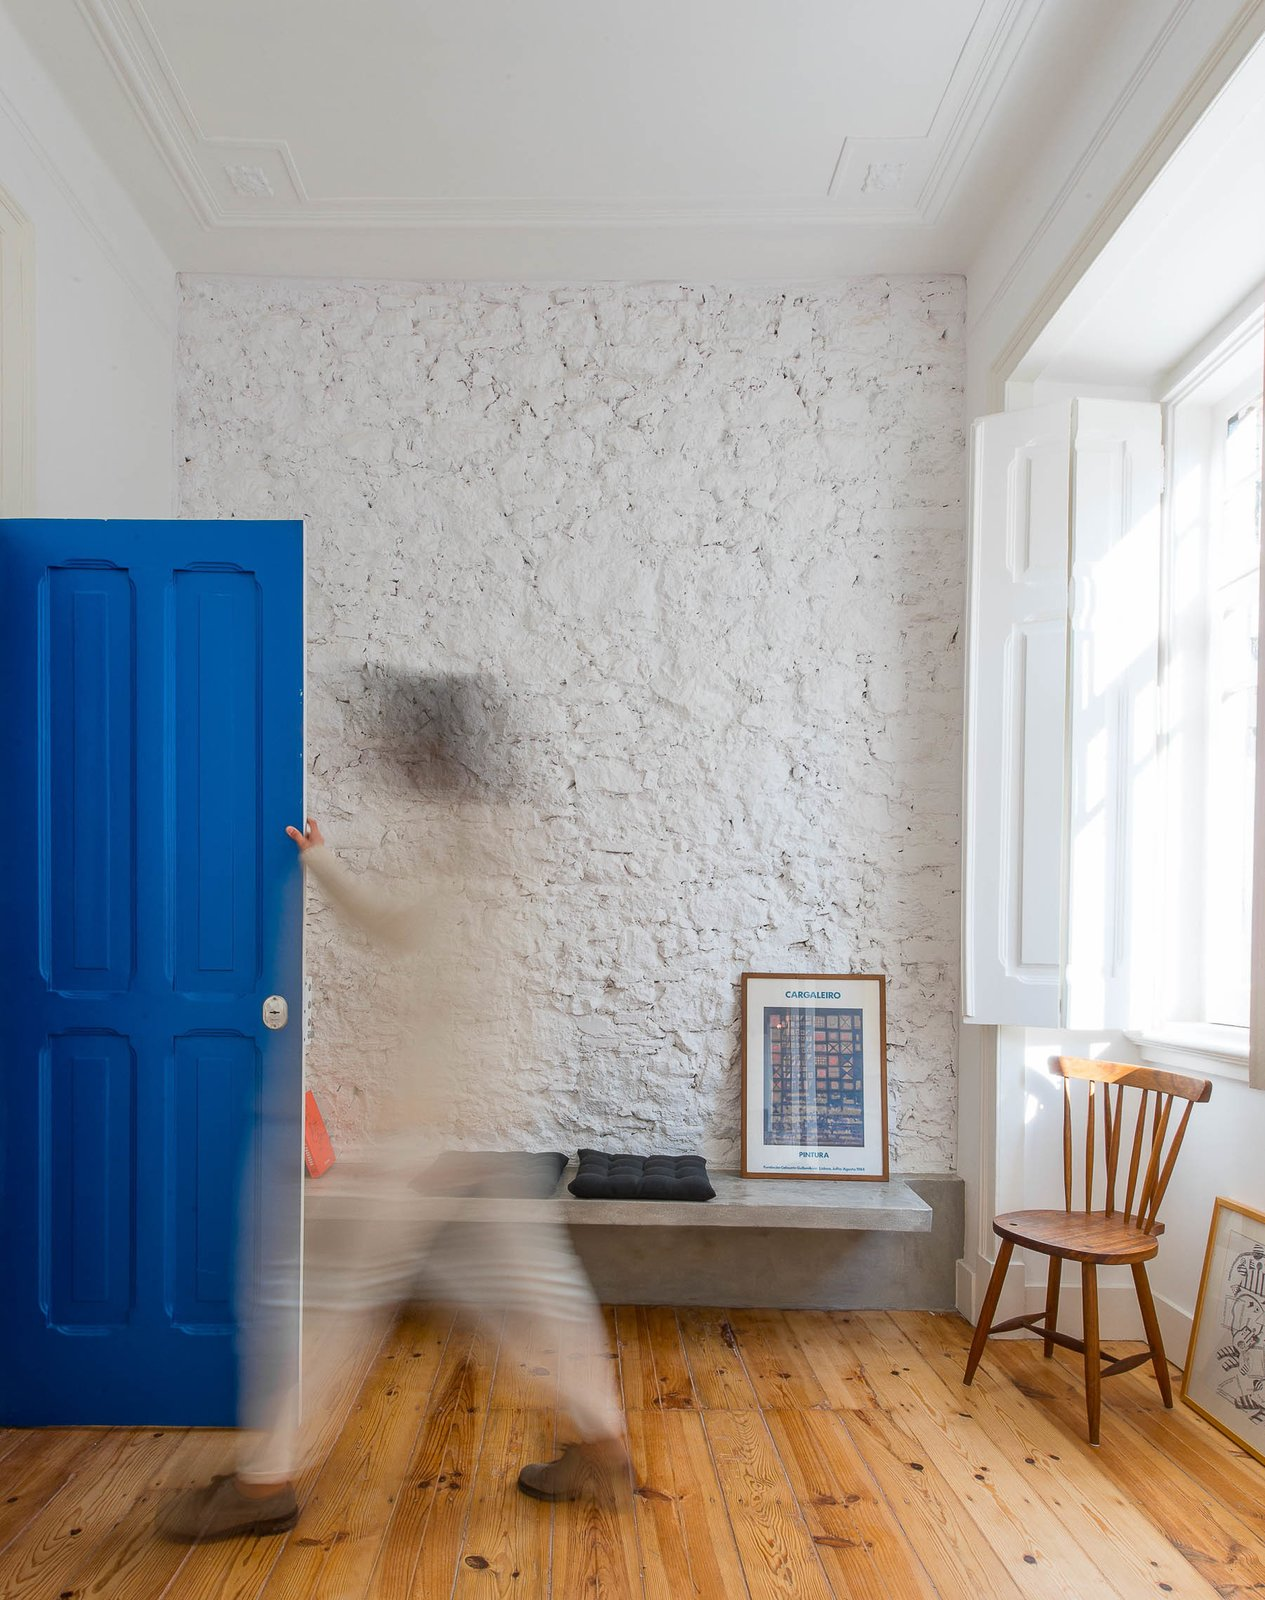 The blue entry door packs a punch in the neutral living area, which is sparsely furnished with inexpensive pieces — some from local Portuguese companies, others self-made or purchased in flea markets.  Photo 20 of 21 in The Pantone Choice: Top 10 Colors for Spring 2017 from Minimal Apartment in Lisbon Divvied Up by Sliding Doors